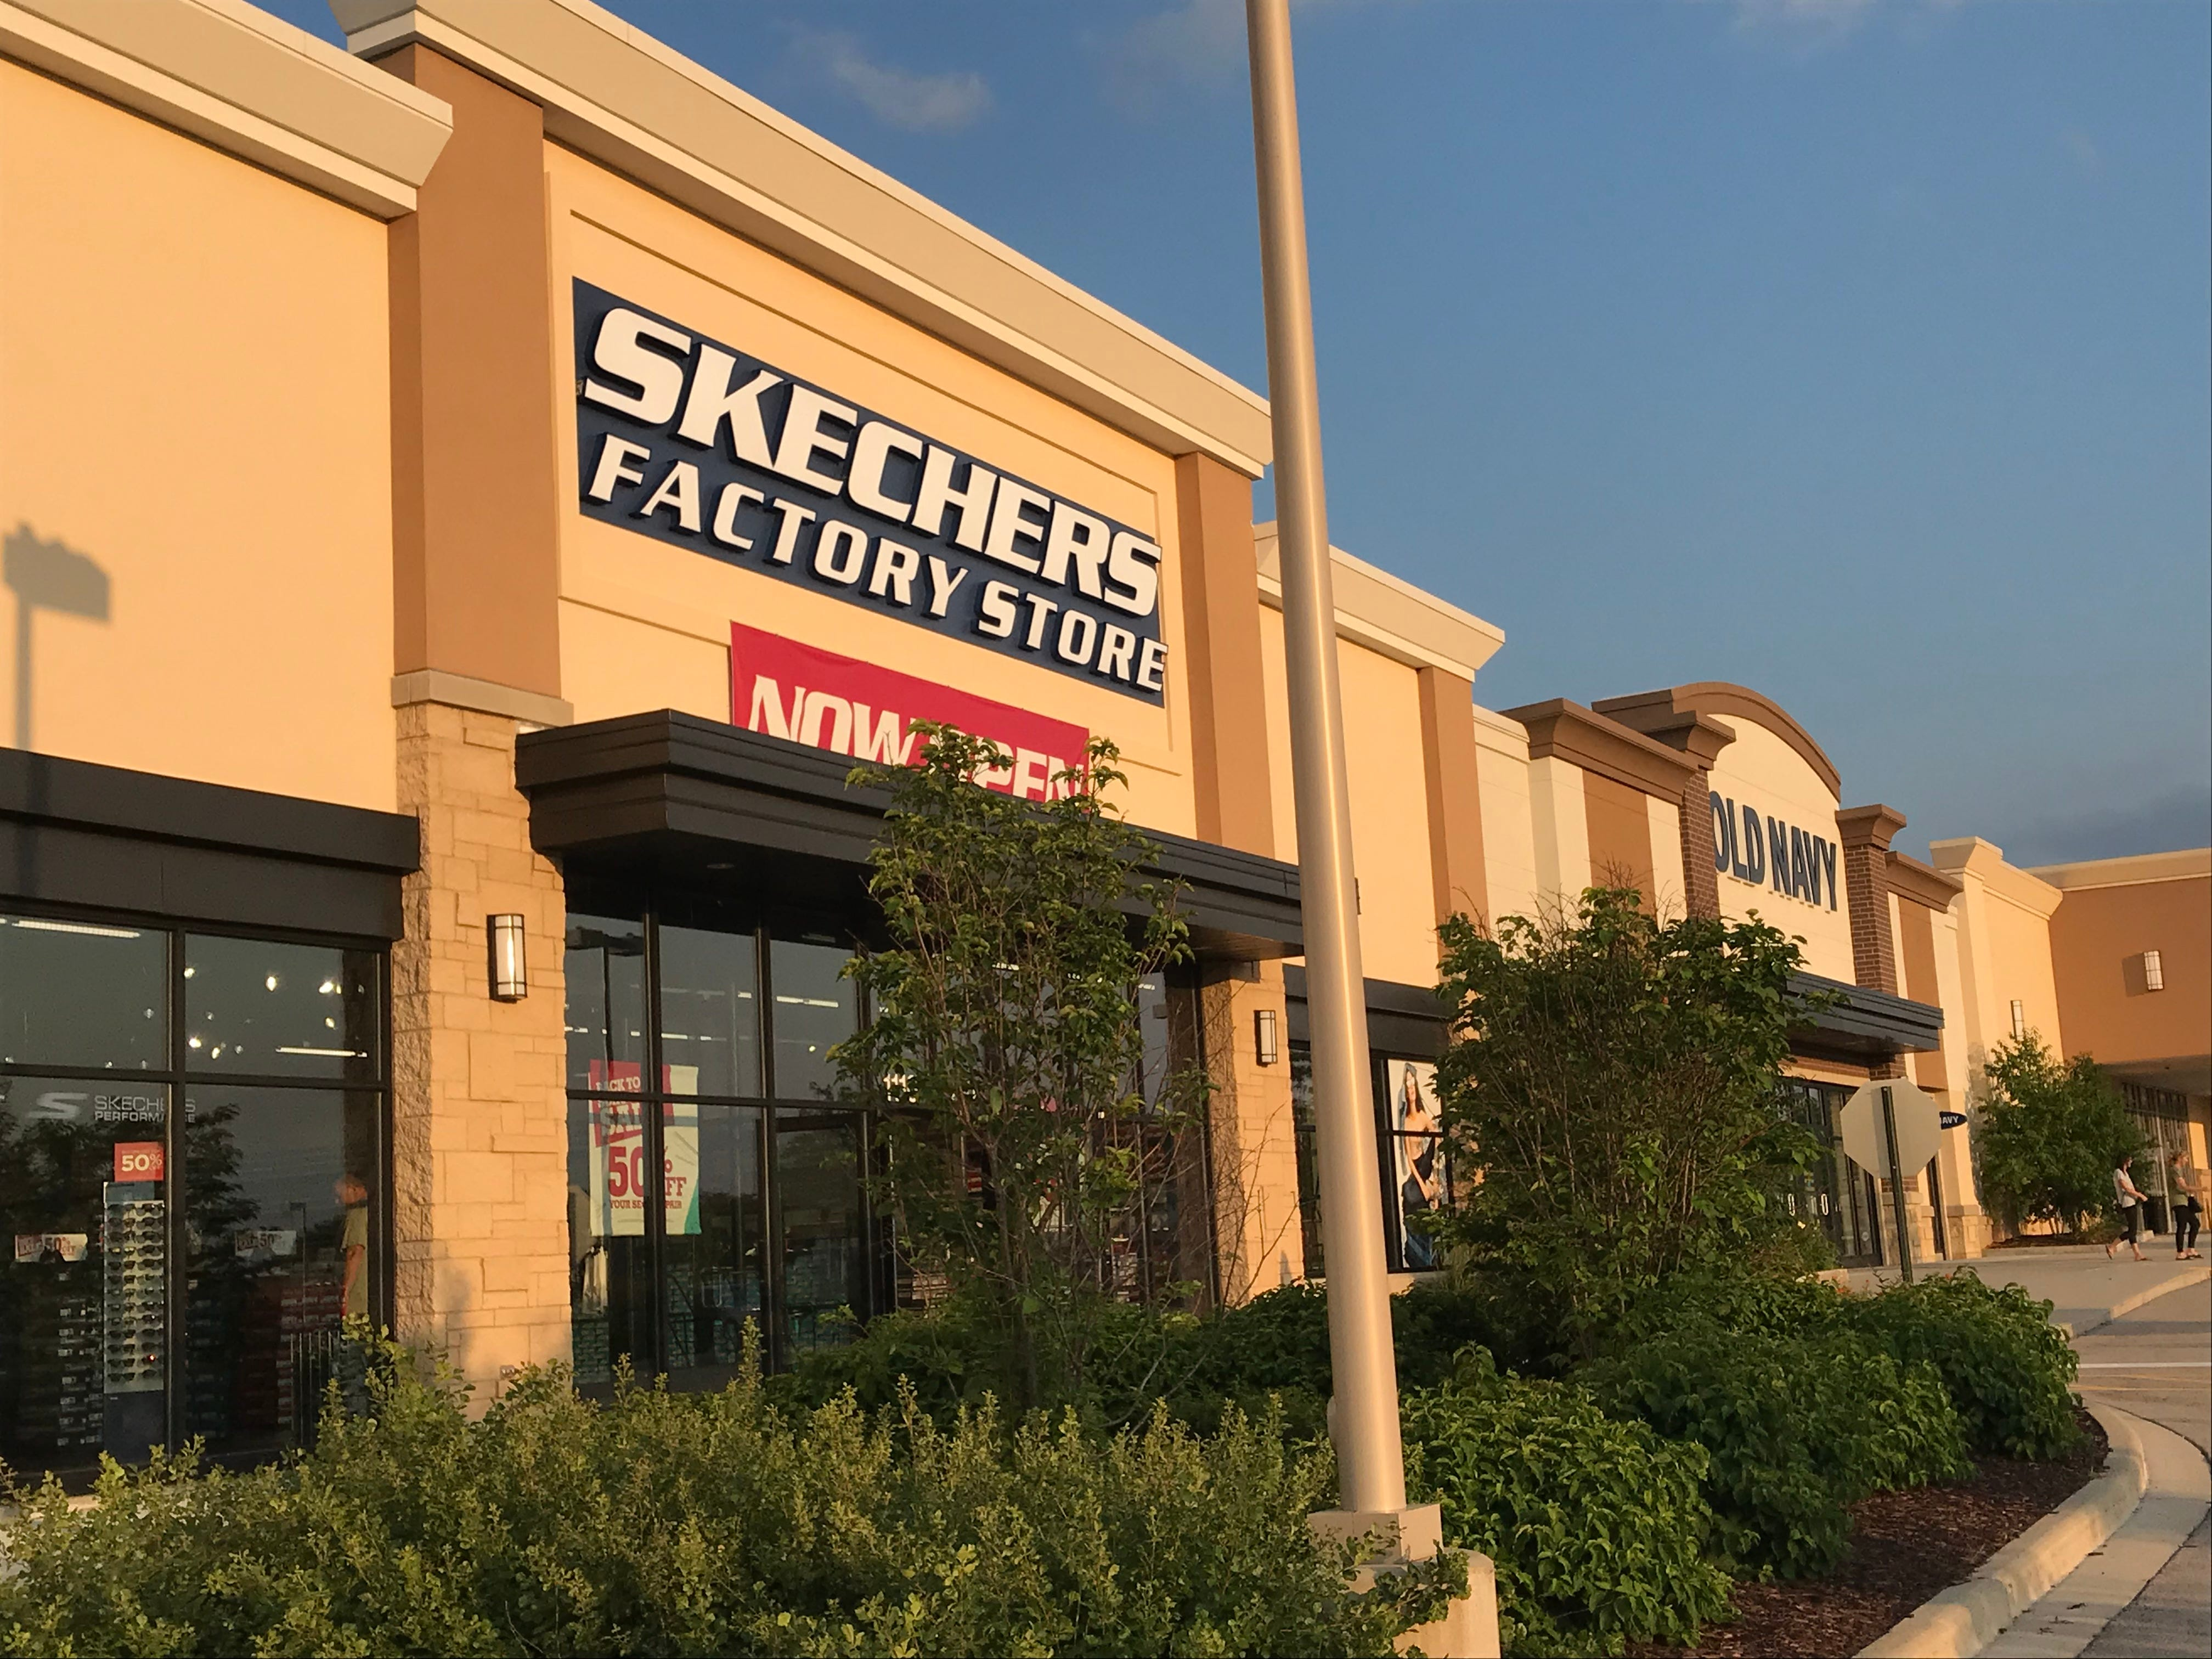 Skechers warehouse store is coming to